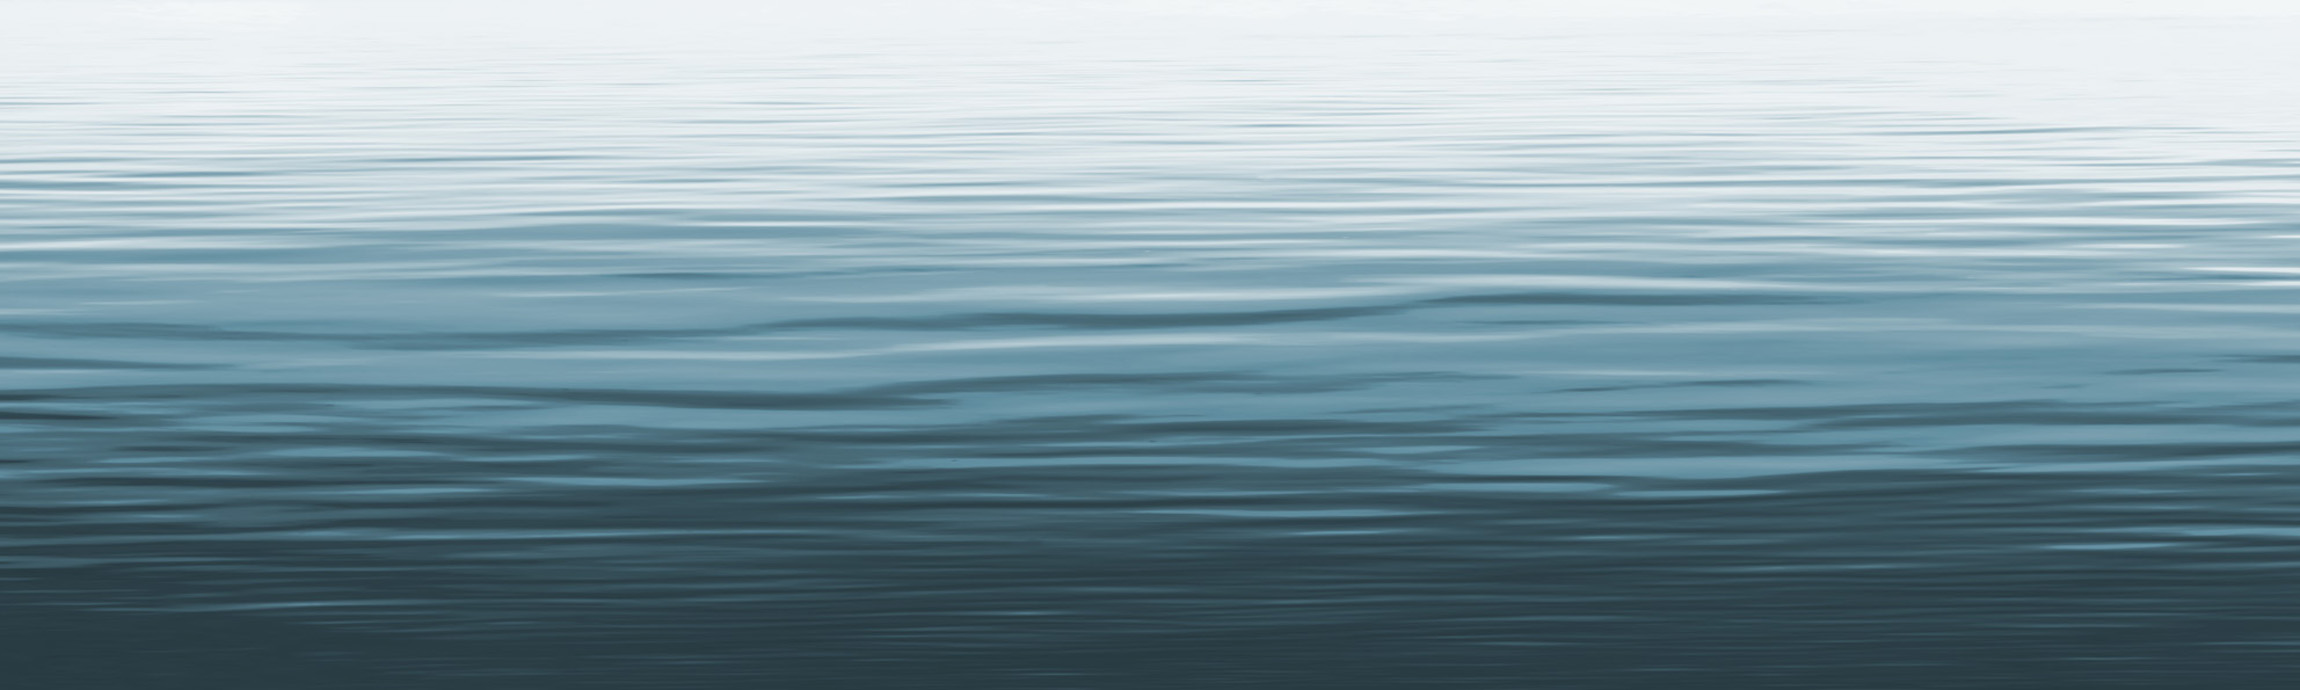 Abstract waters